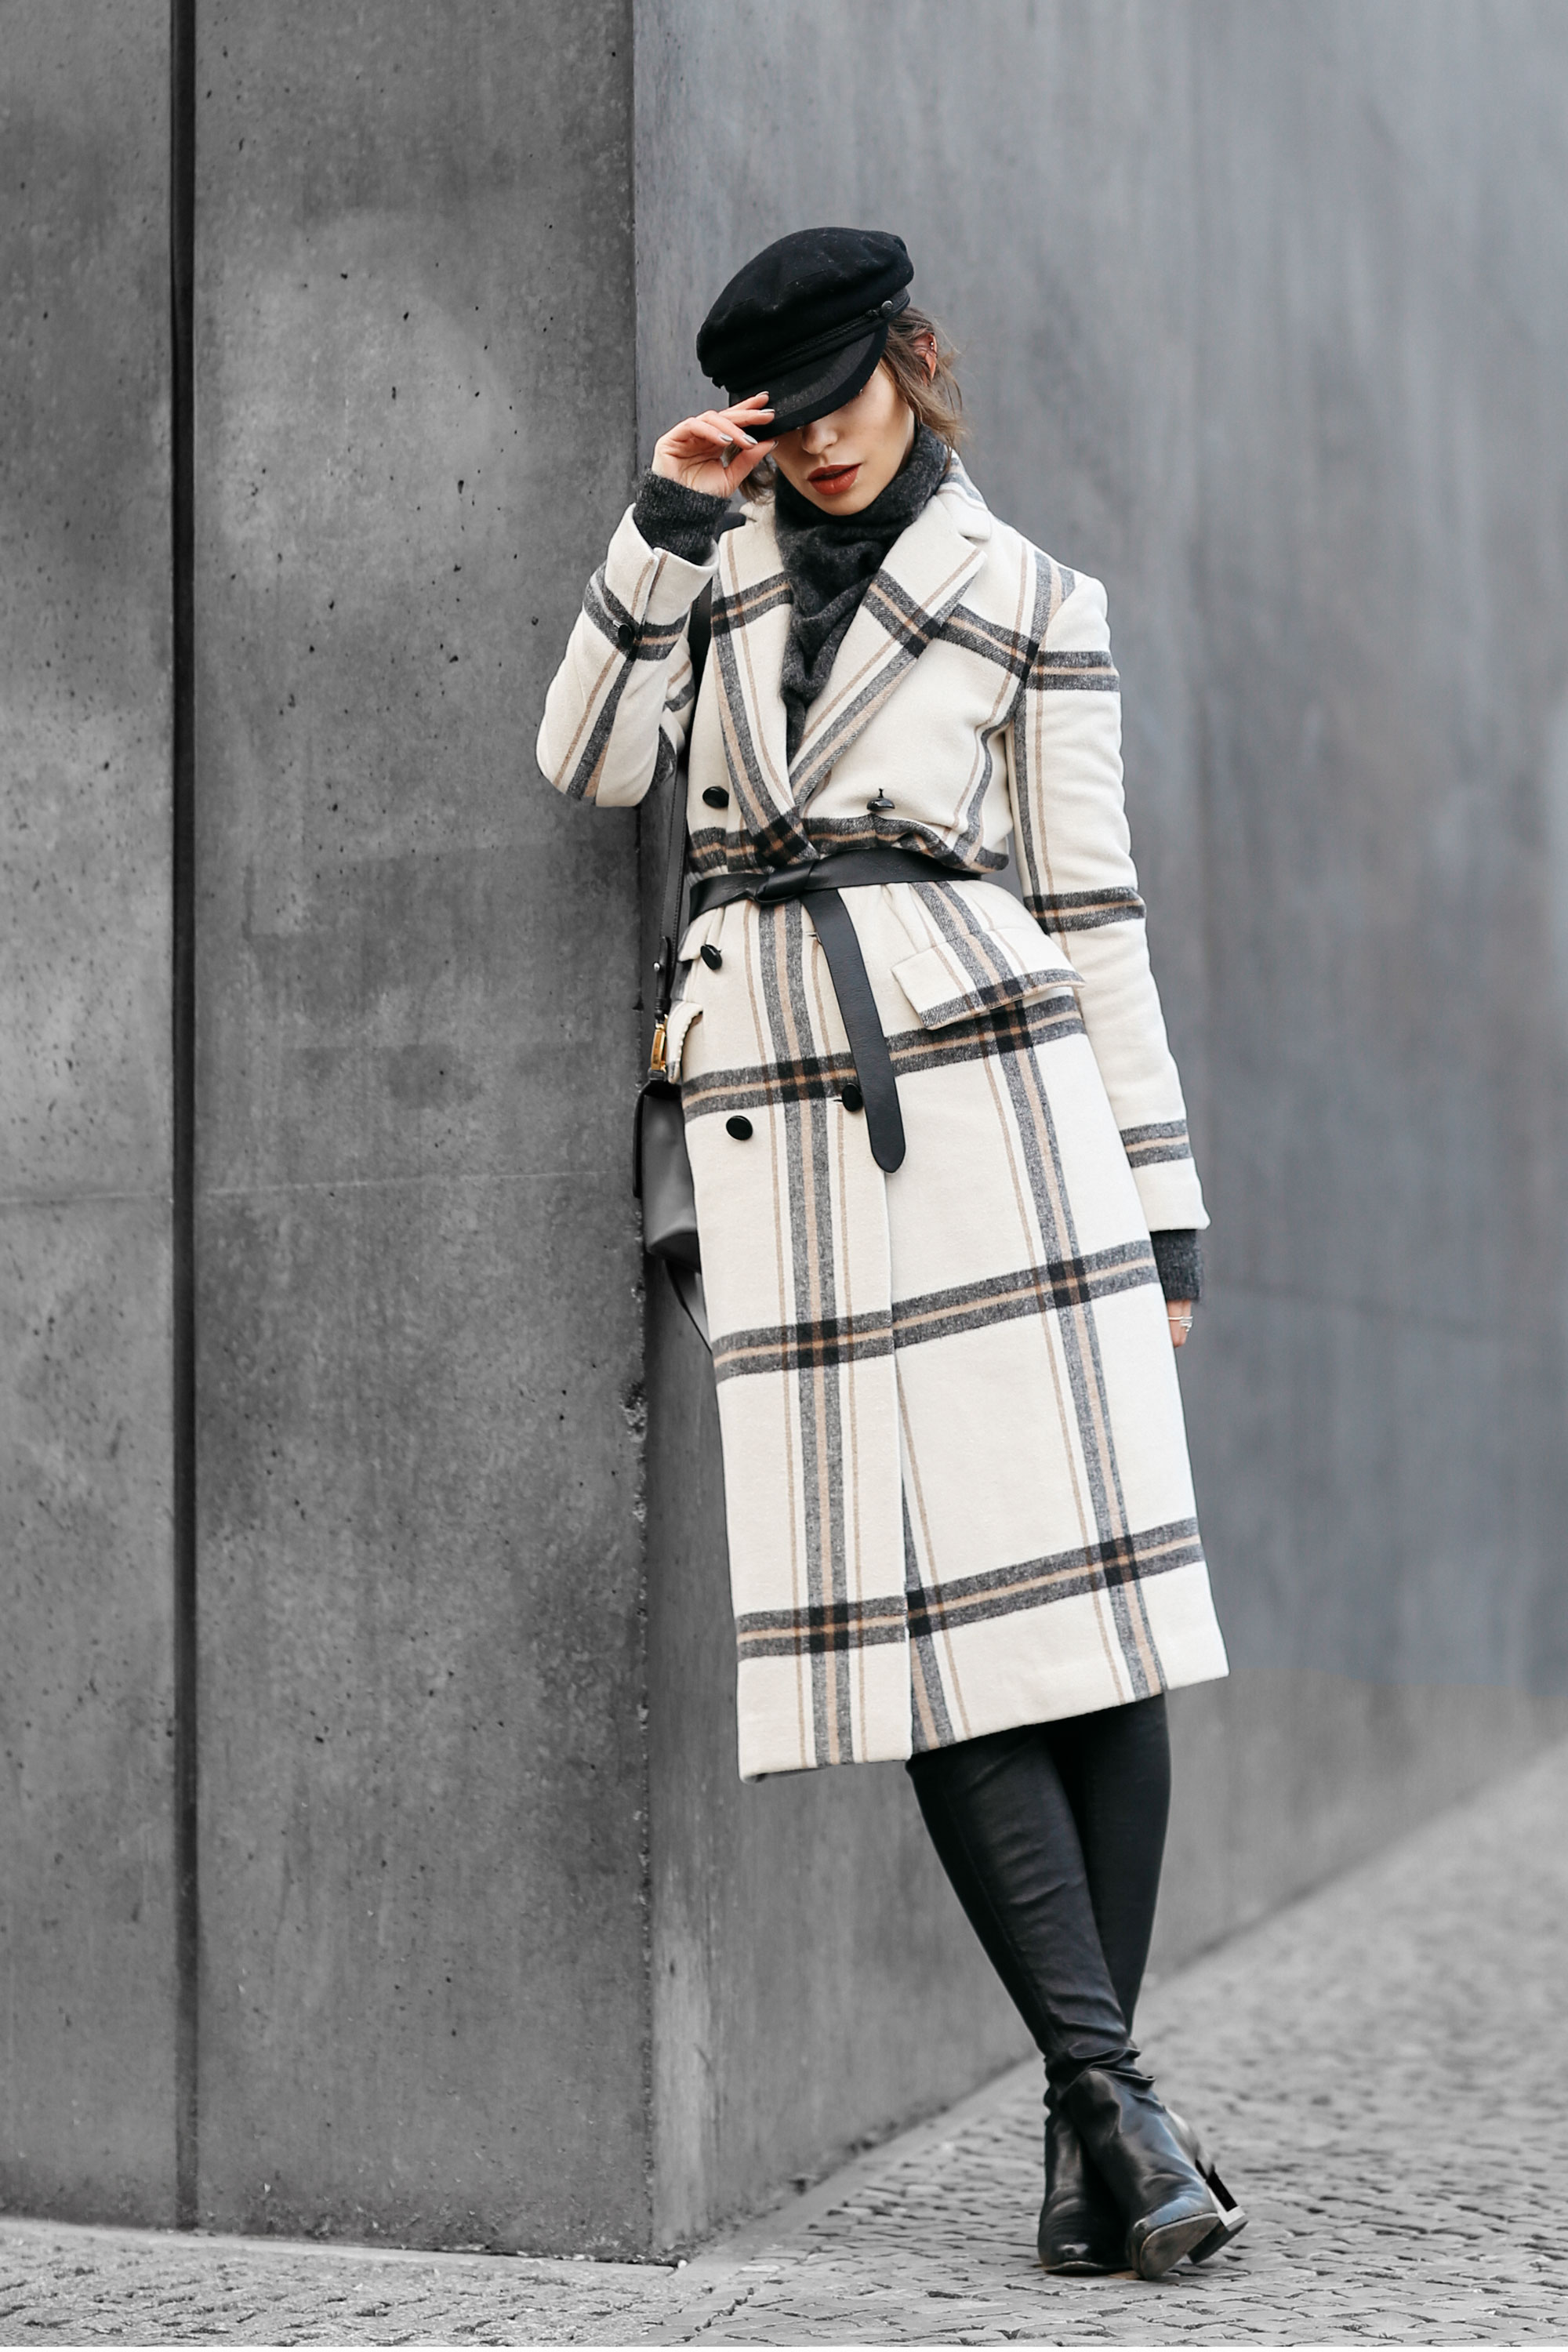 Street Style in Berlin | AW17 | Outfit | Mode | Mantel: By Malene Birger | elegant, schick, kariert | Herbst | Winter